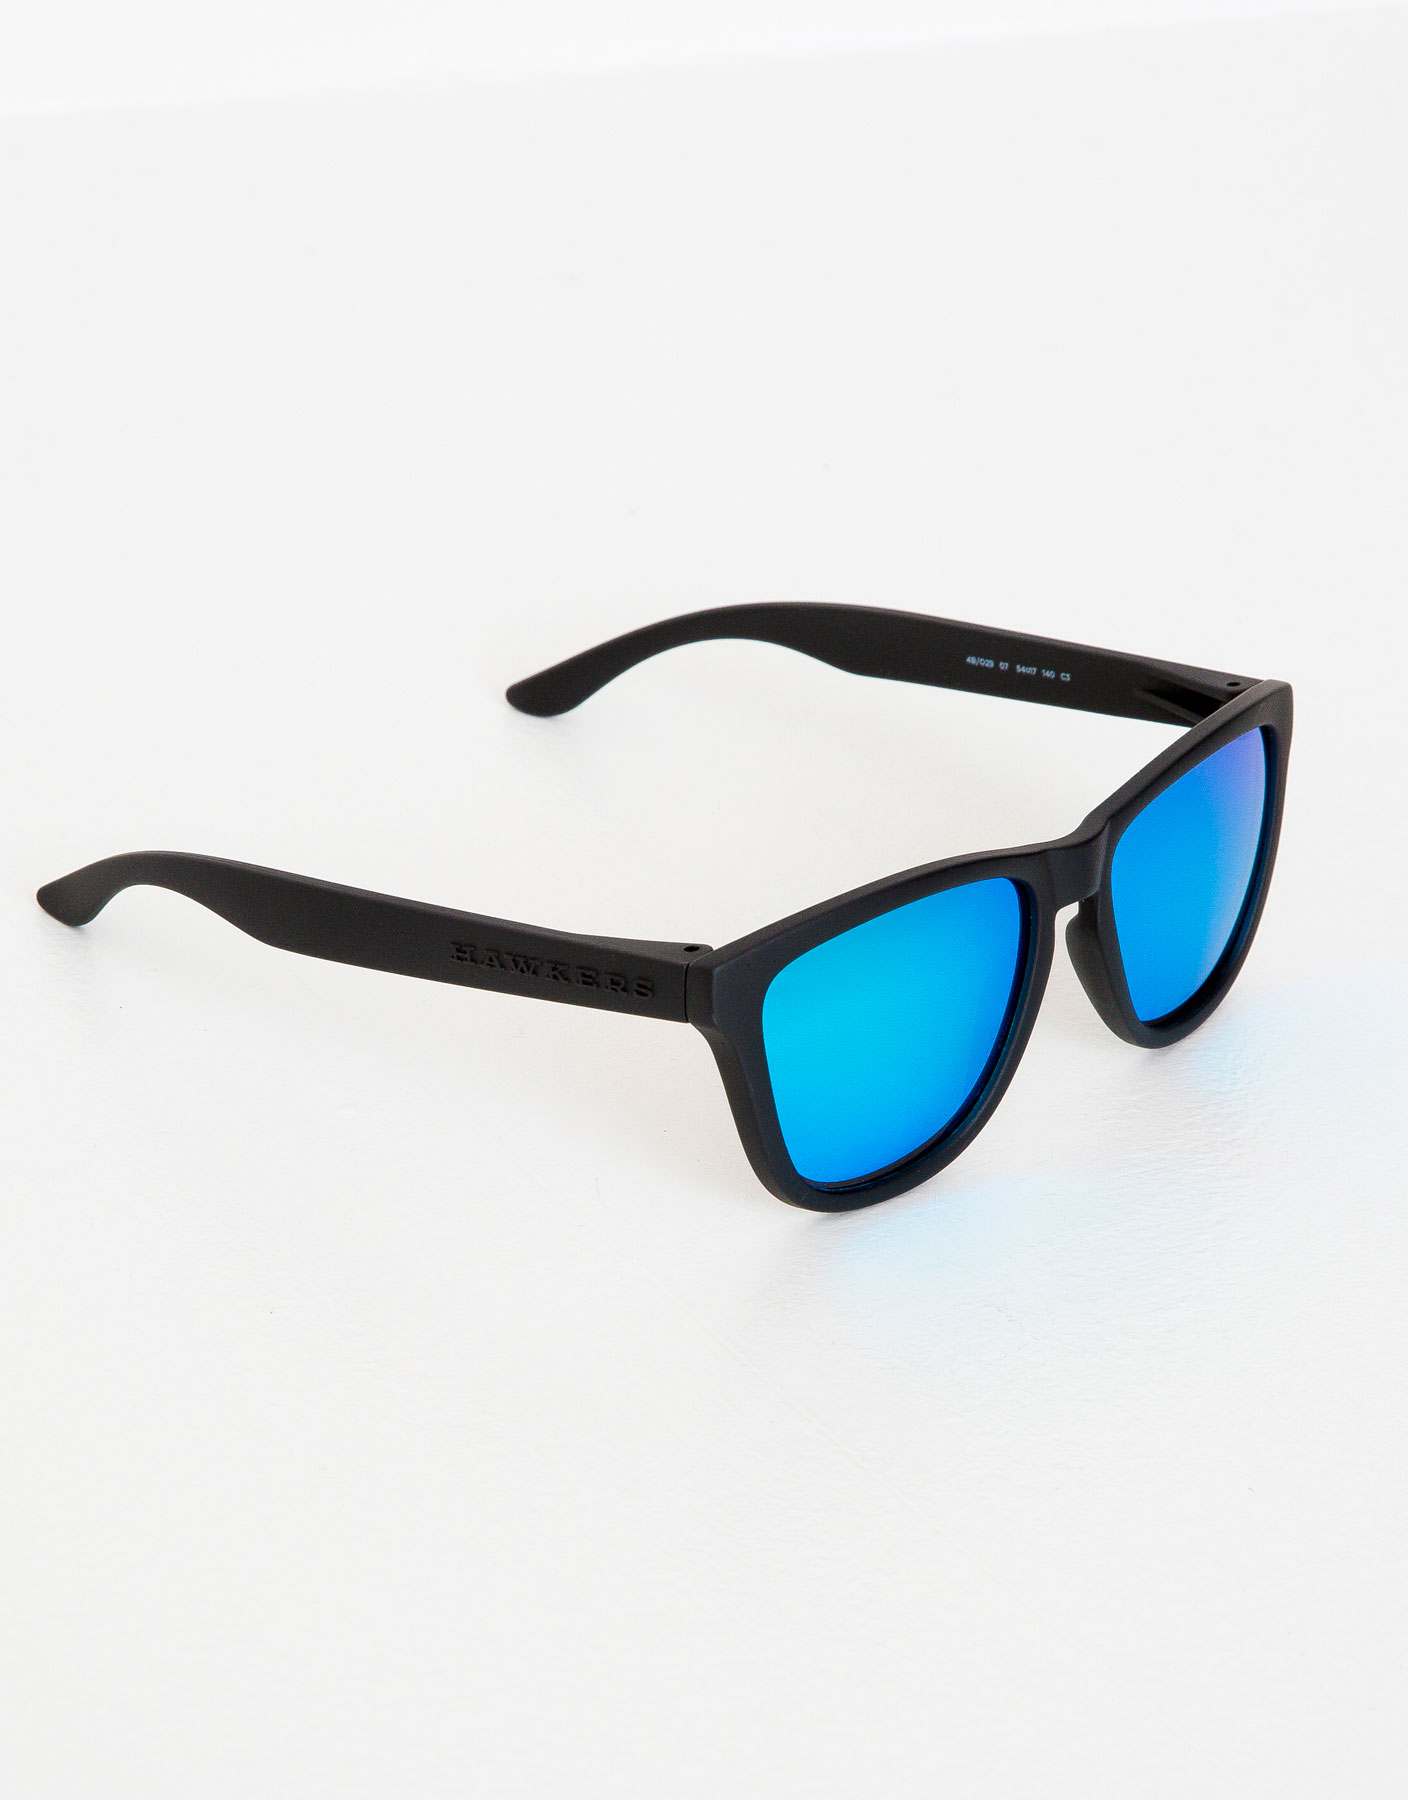 Hawkers carbon black clear blue one sunglasses